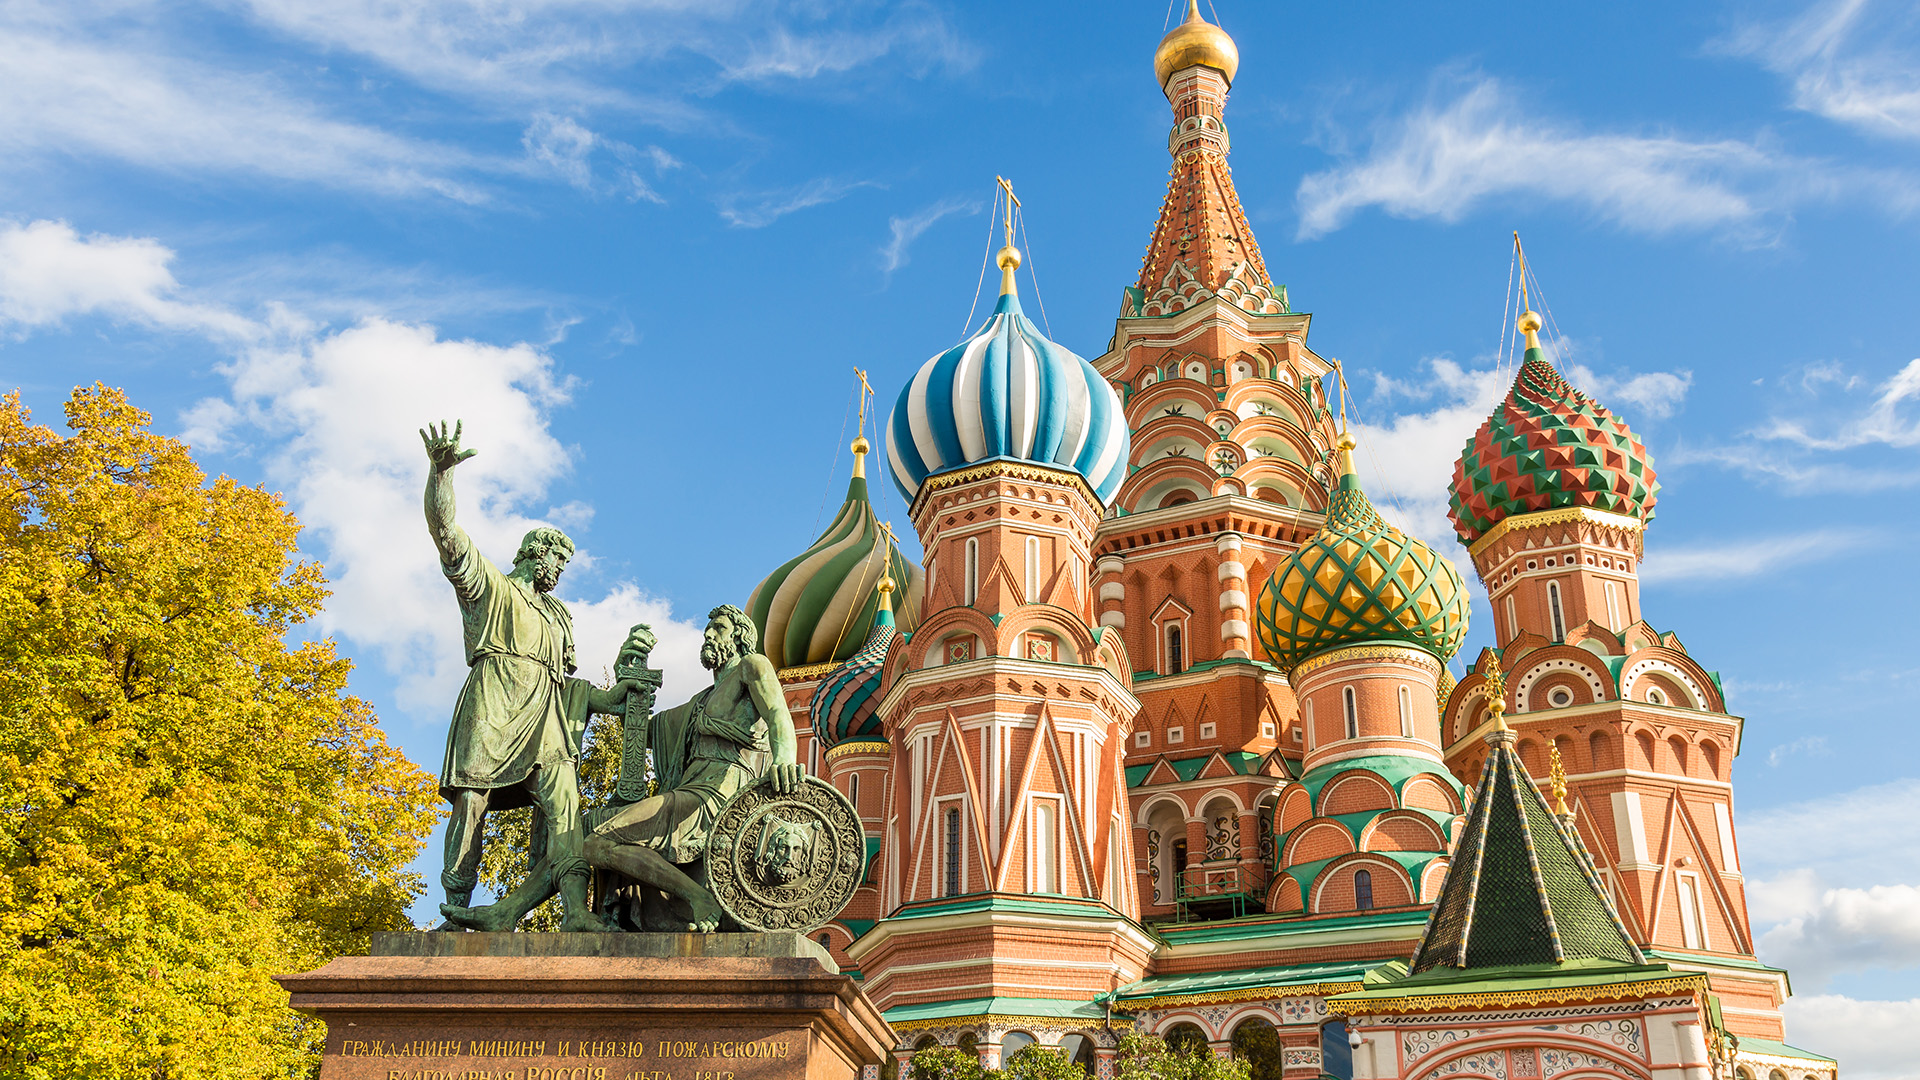 St. Basil's Cathedral in Russia